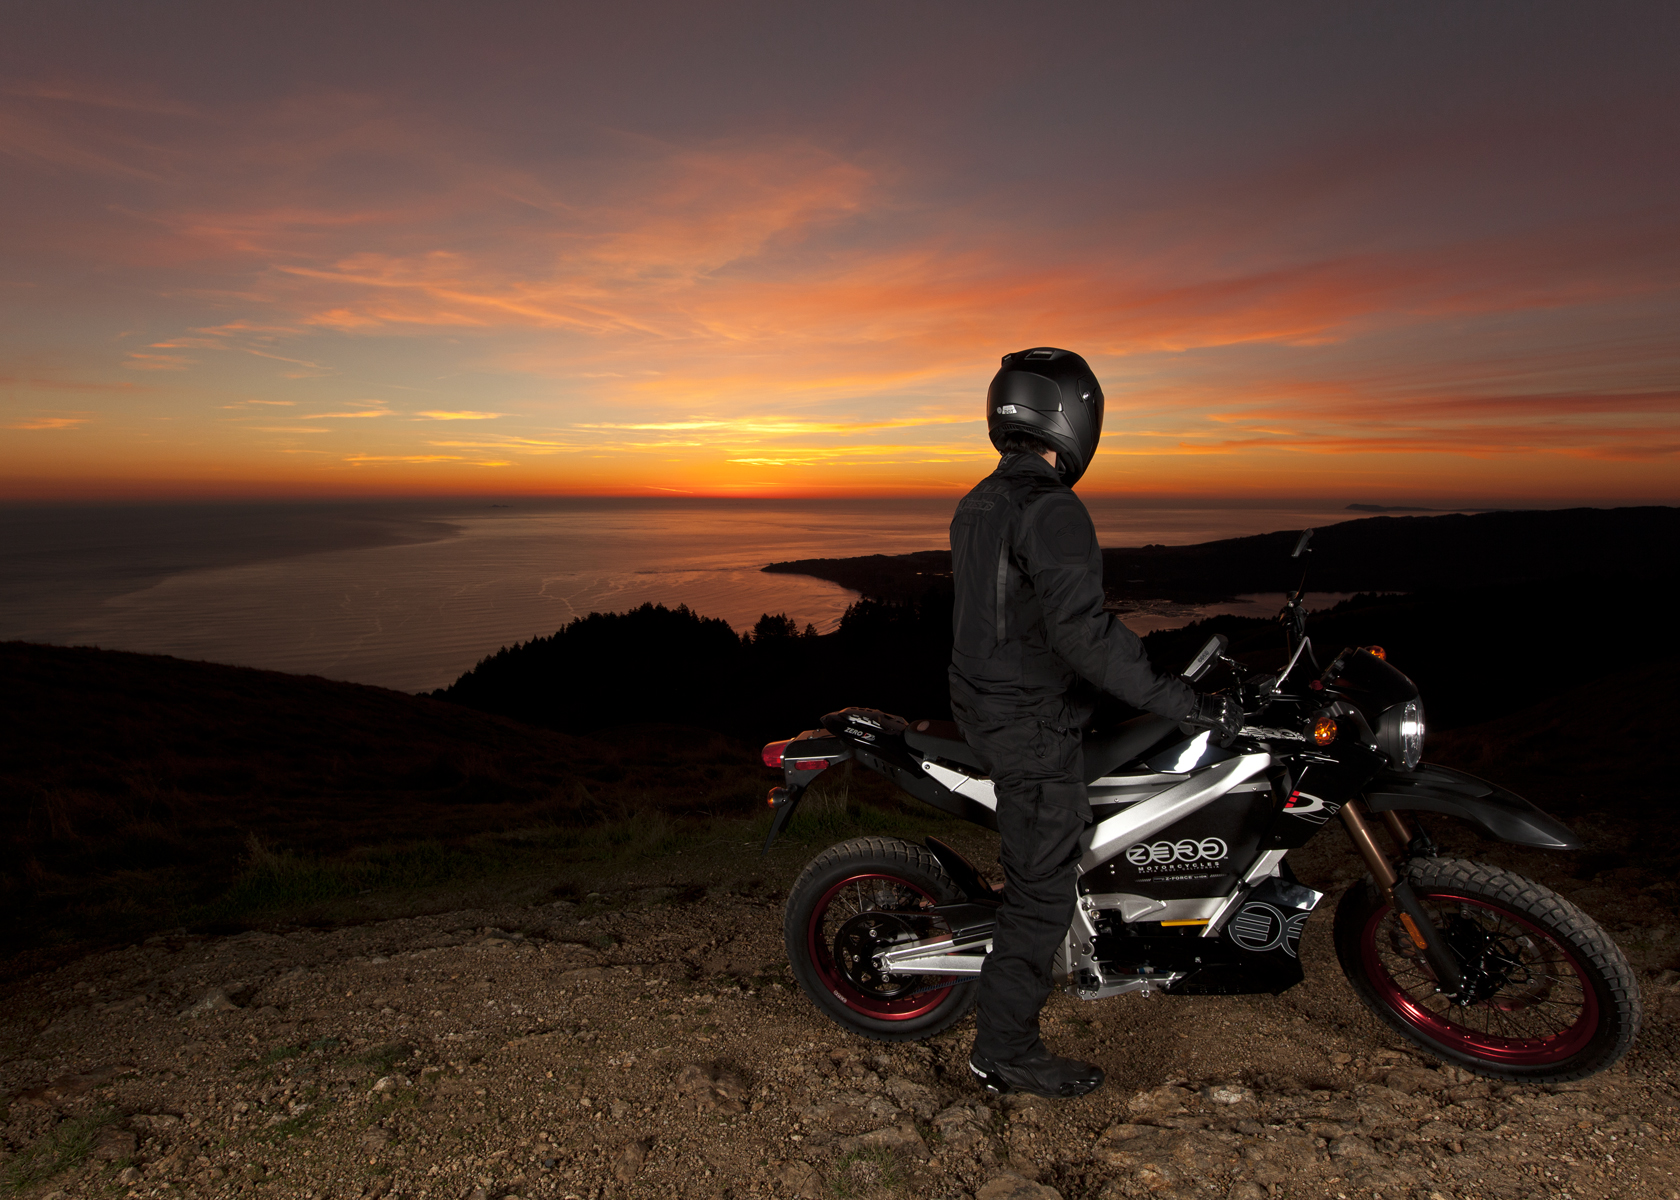 2011 Zero DS Electric Motorcycle: Profile at Sunset